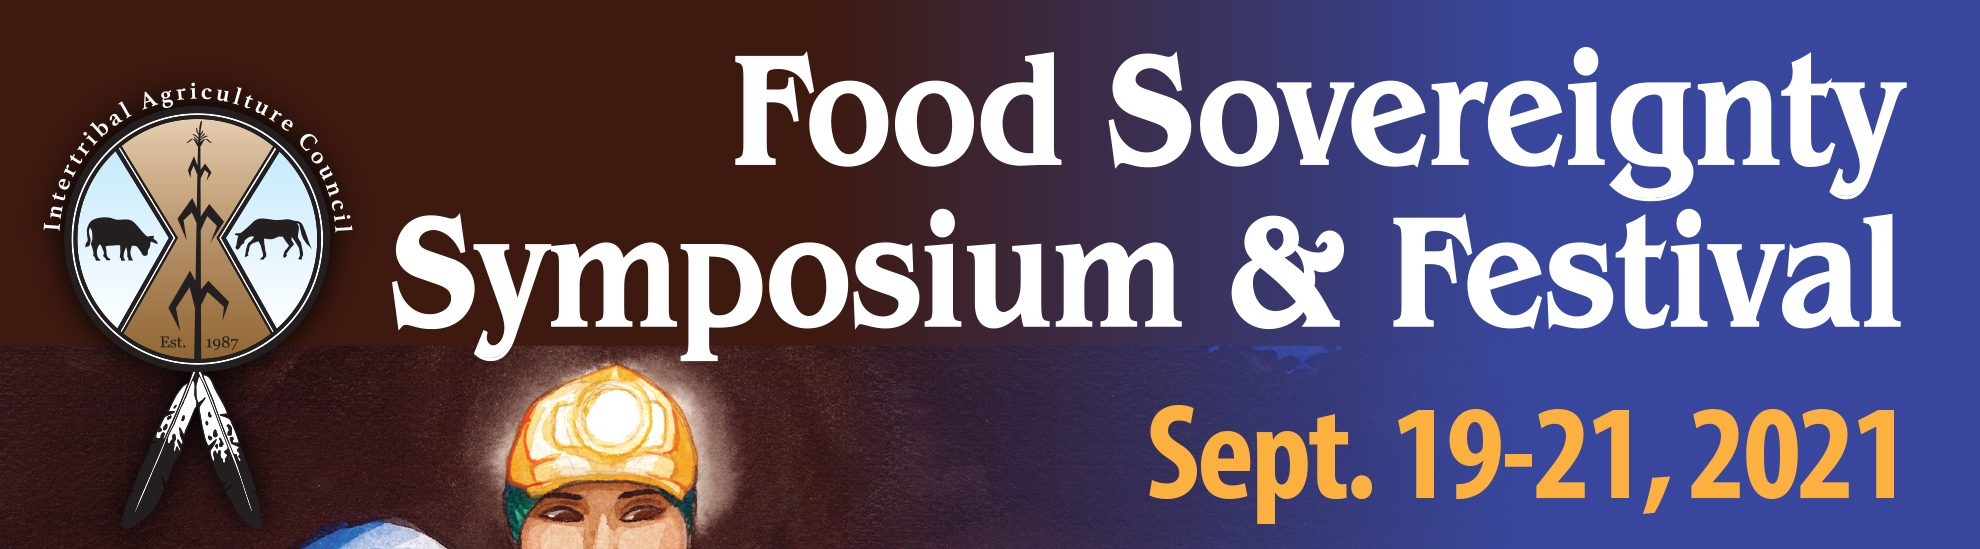 Food Sovereignty Symposium and Festival • Sept 19-21